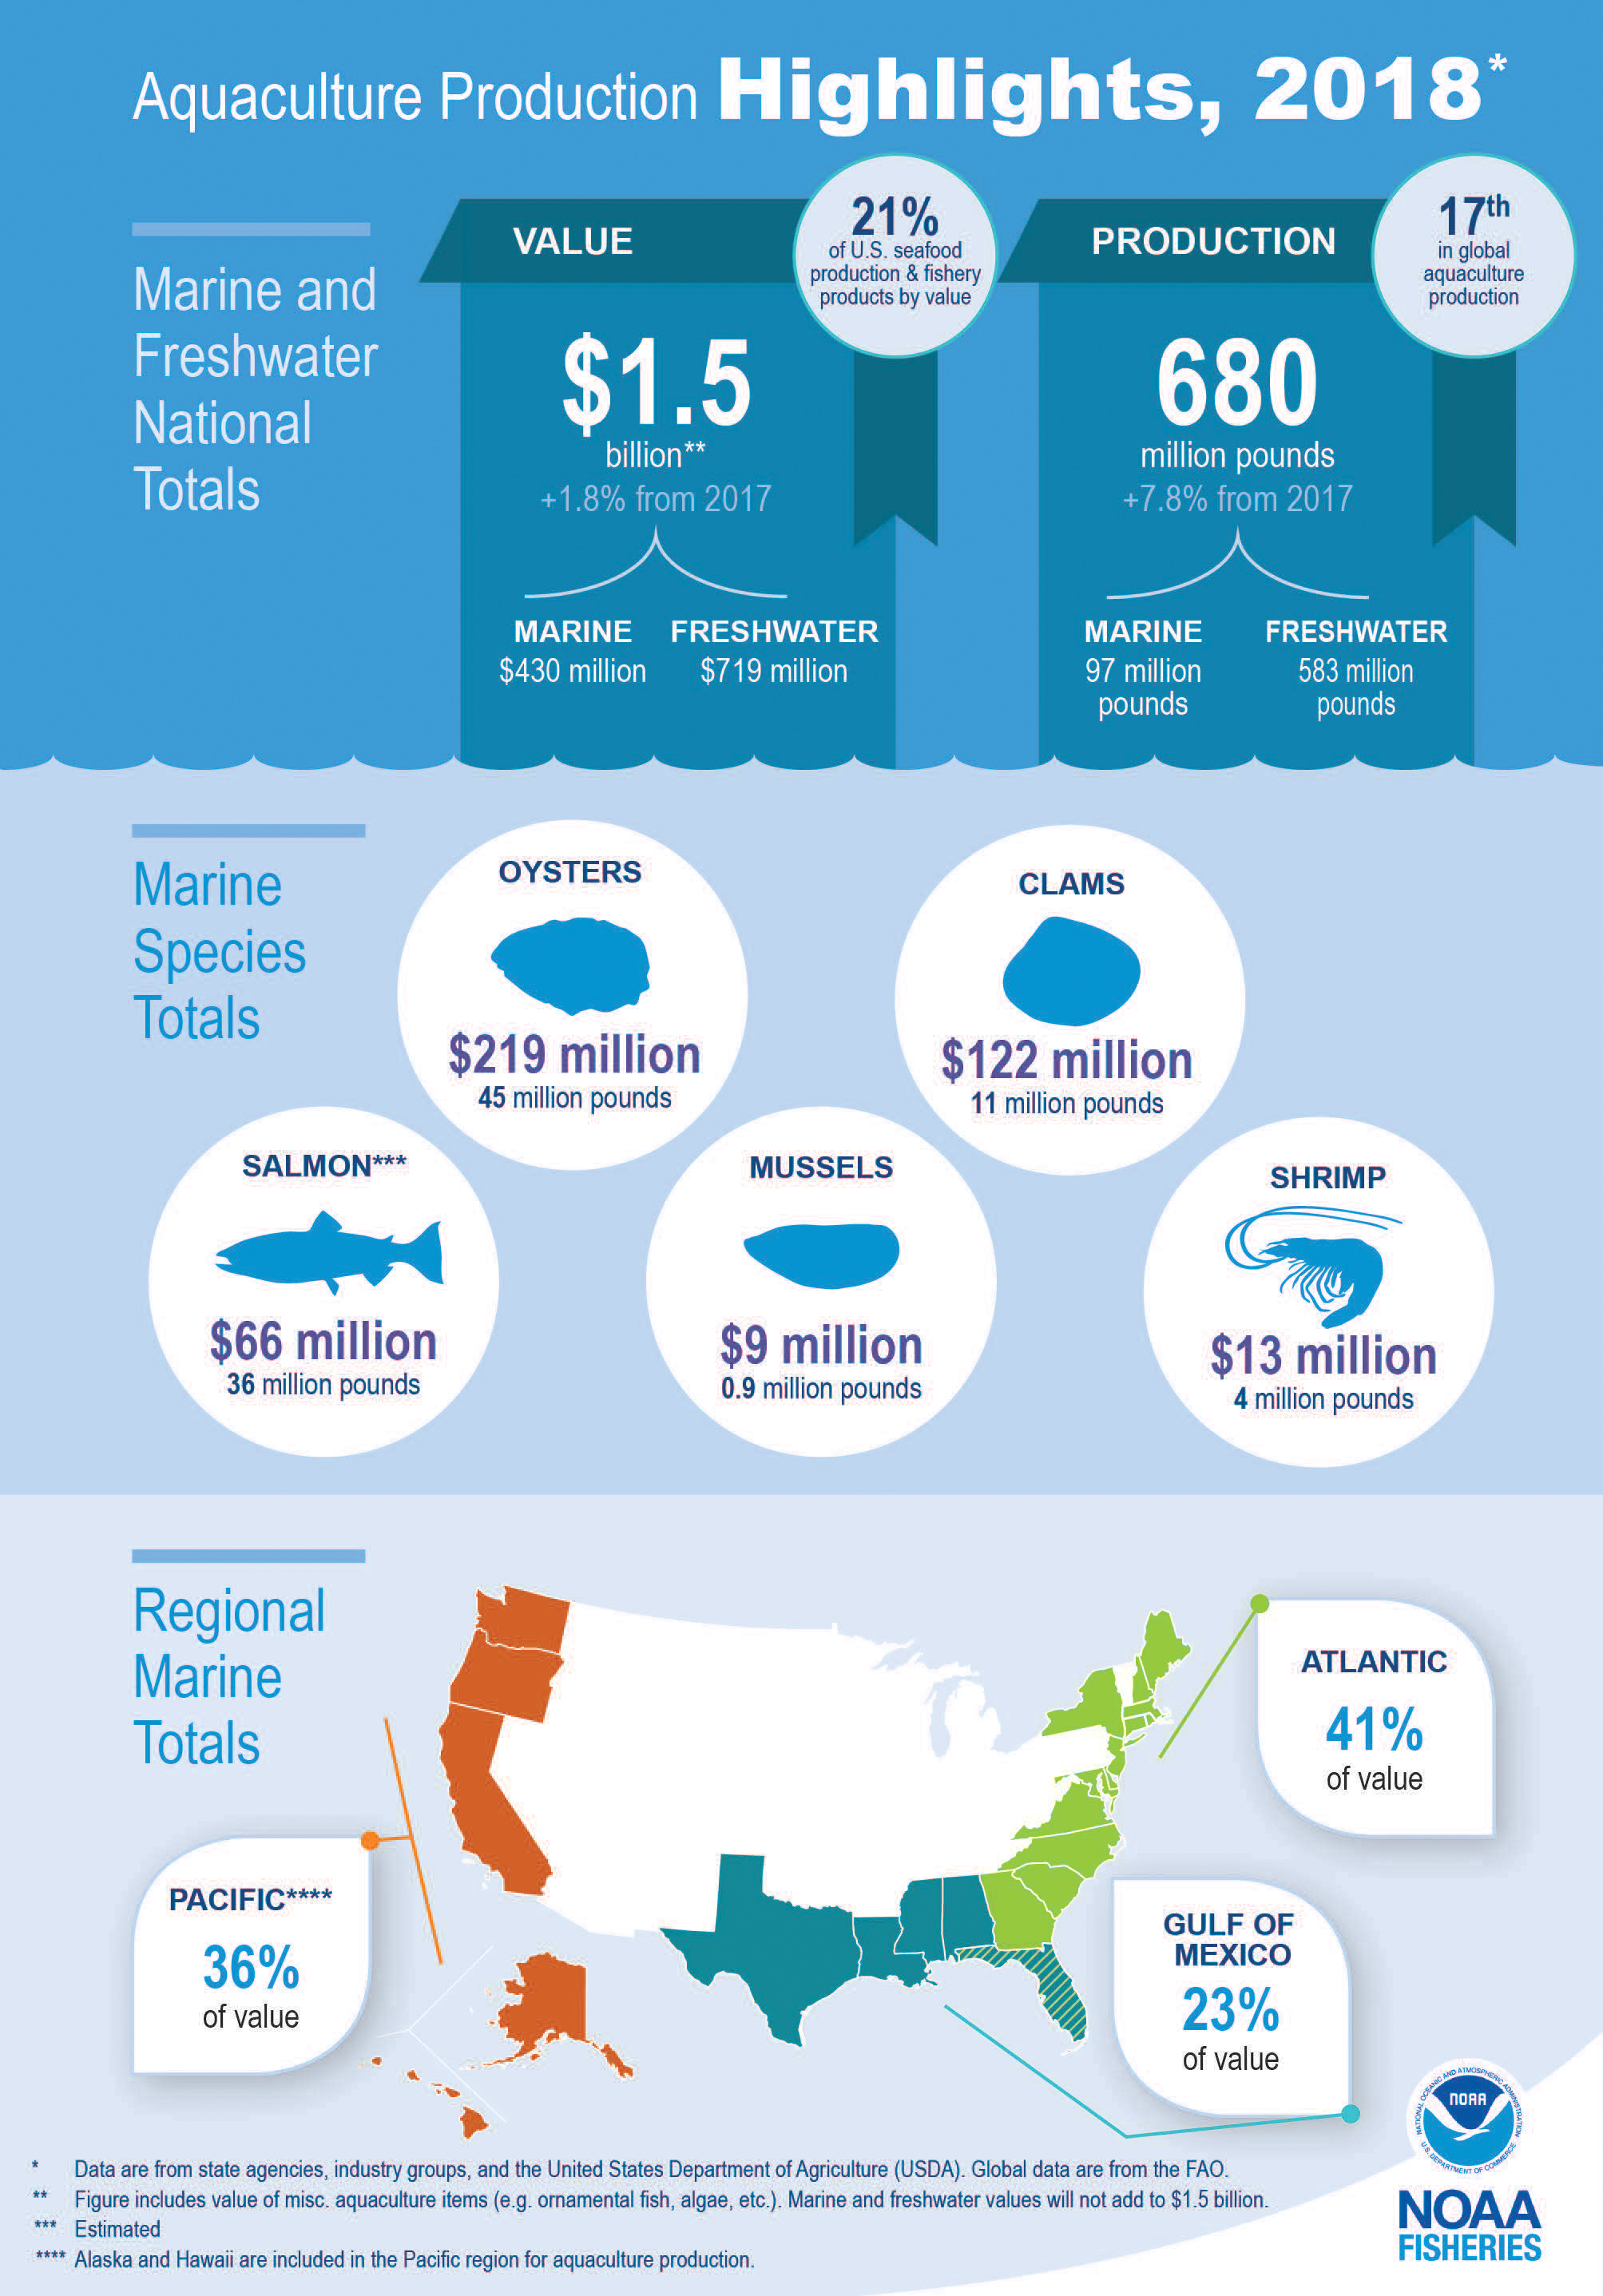 Graphic illustrating highlights of aquaculture production in 2018, including the top species produced (oysters, clams, Atlantic salmon, mussels, and shrimp).